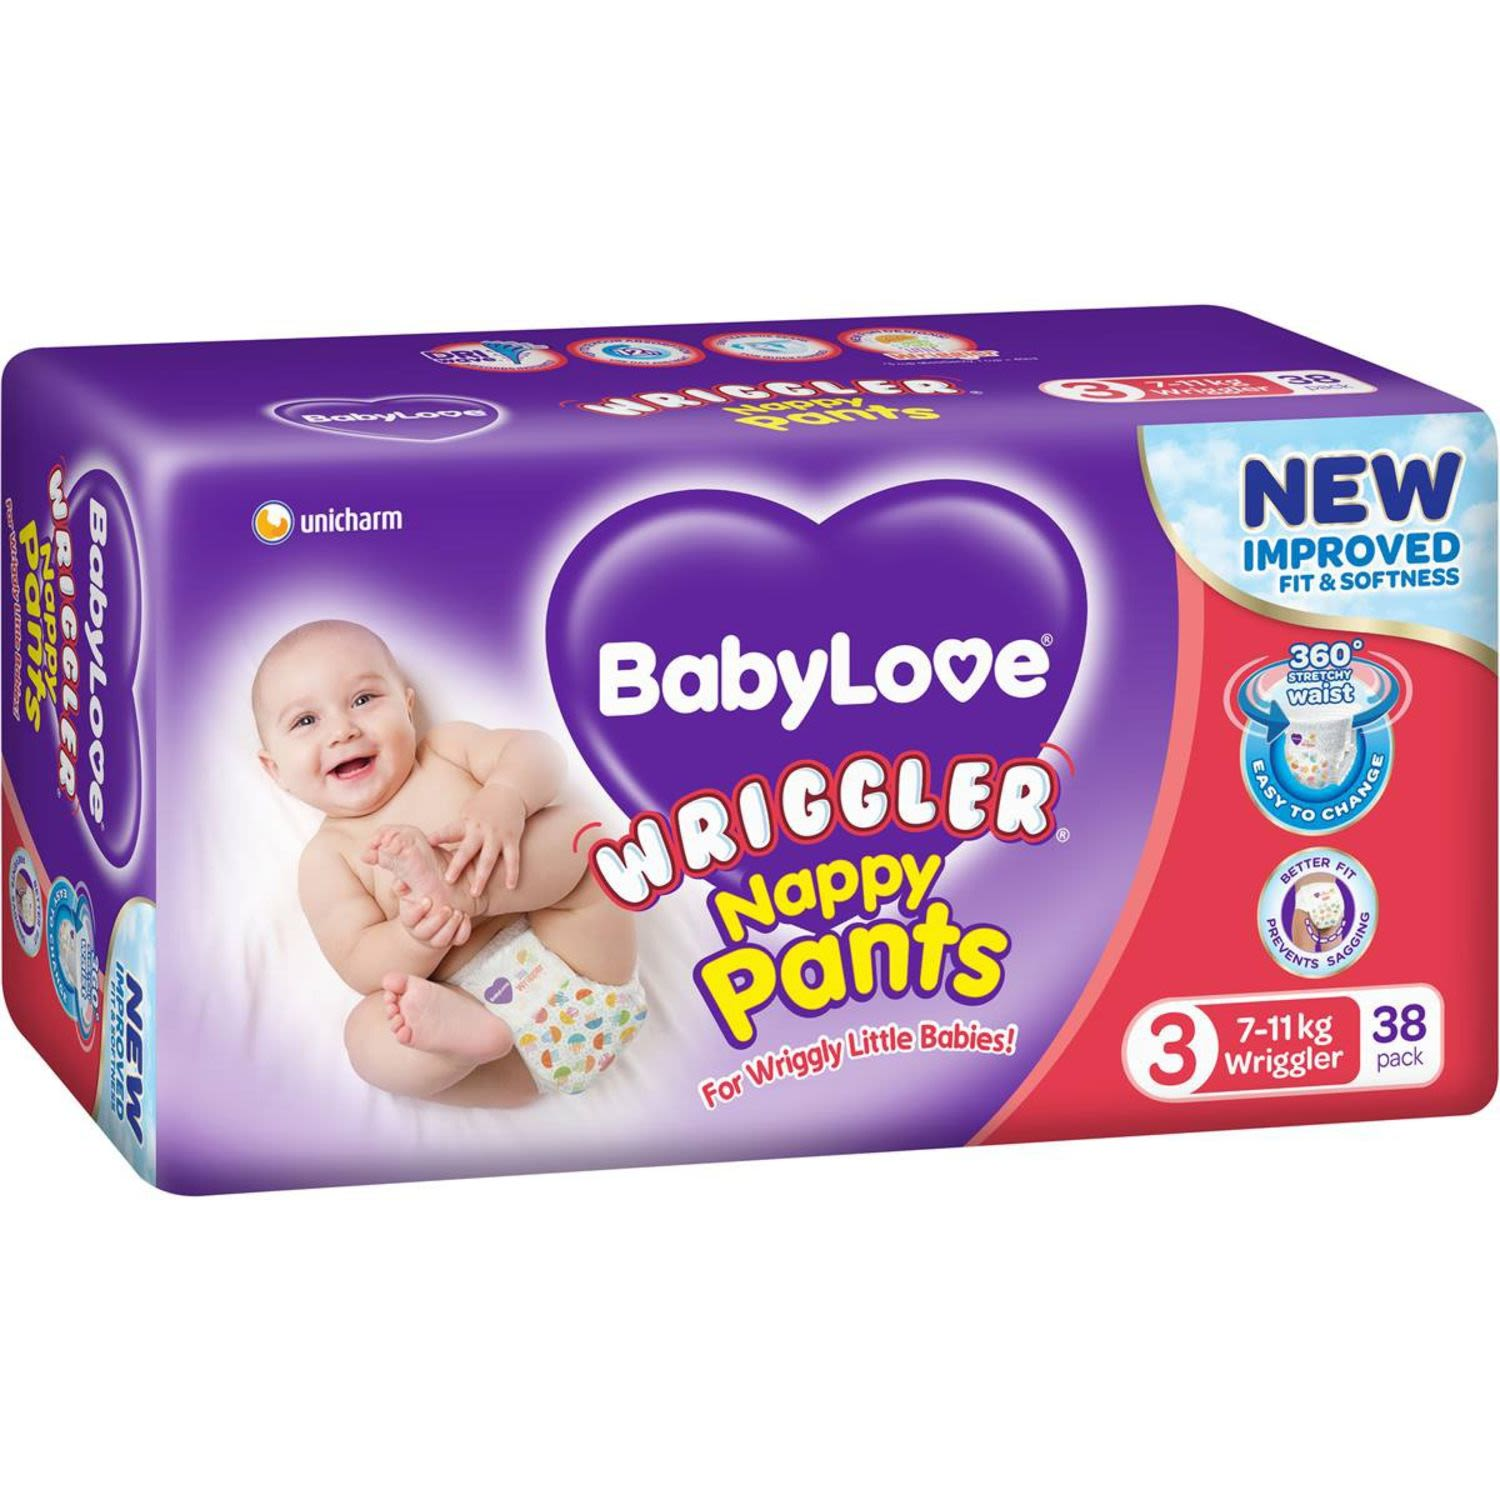 Babylove Nappy Pants Wriggler, 38 Each